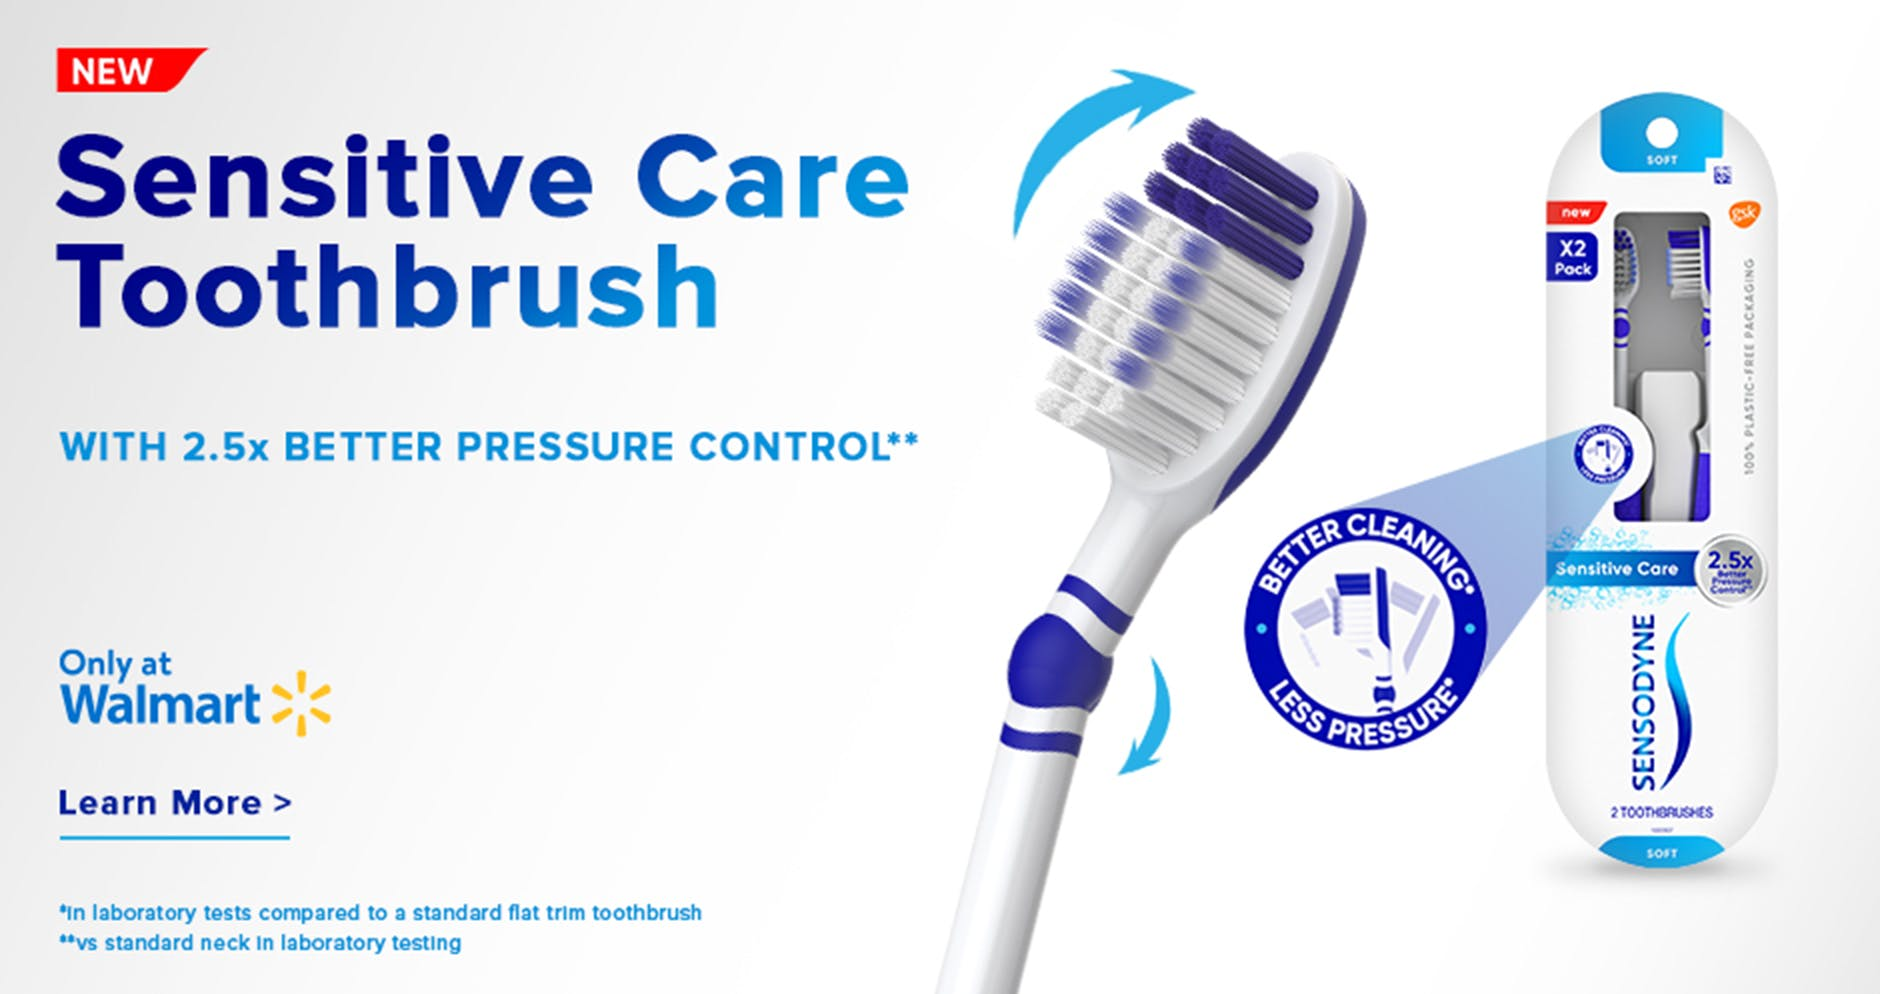 Sensodyne Sensitive Care Toothbrush close-up shot and packaging